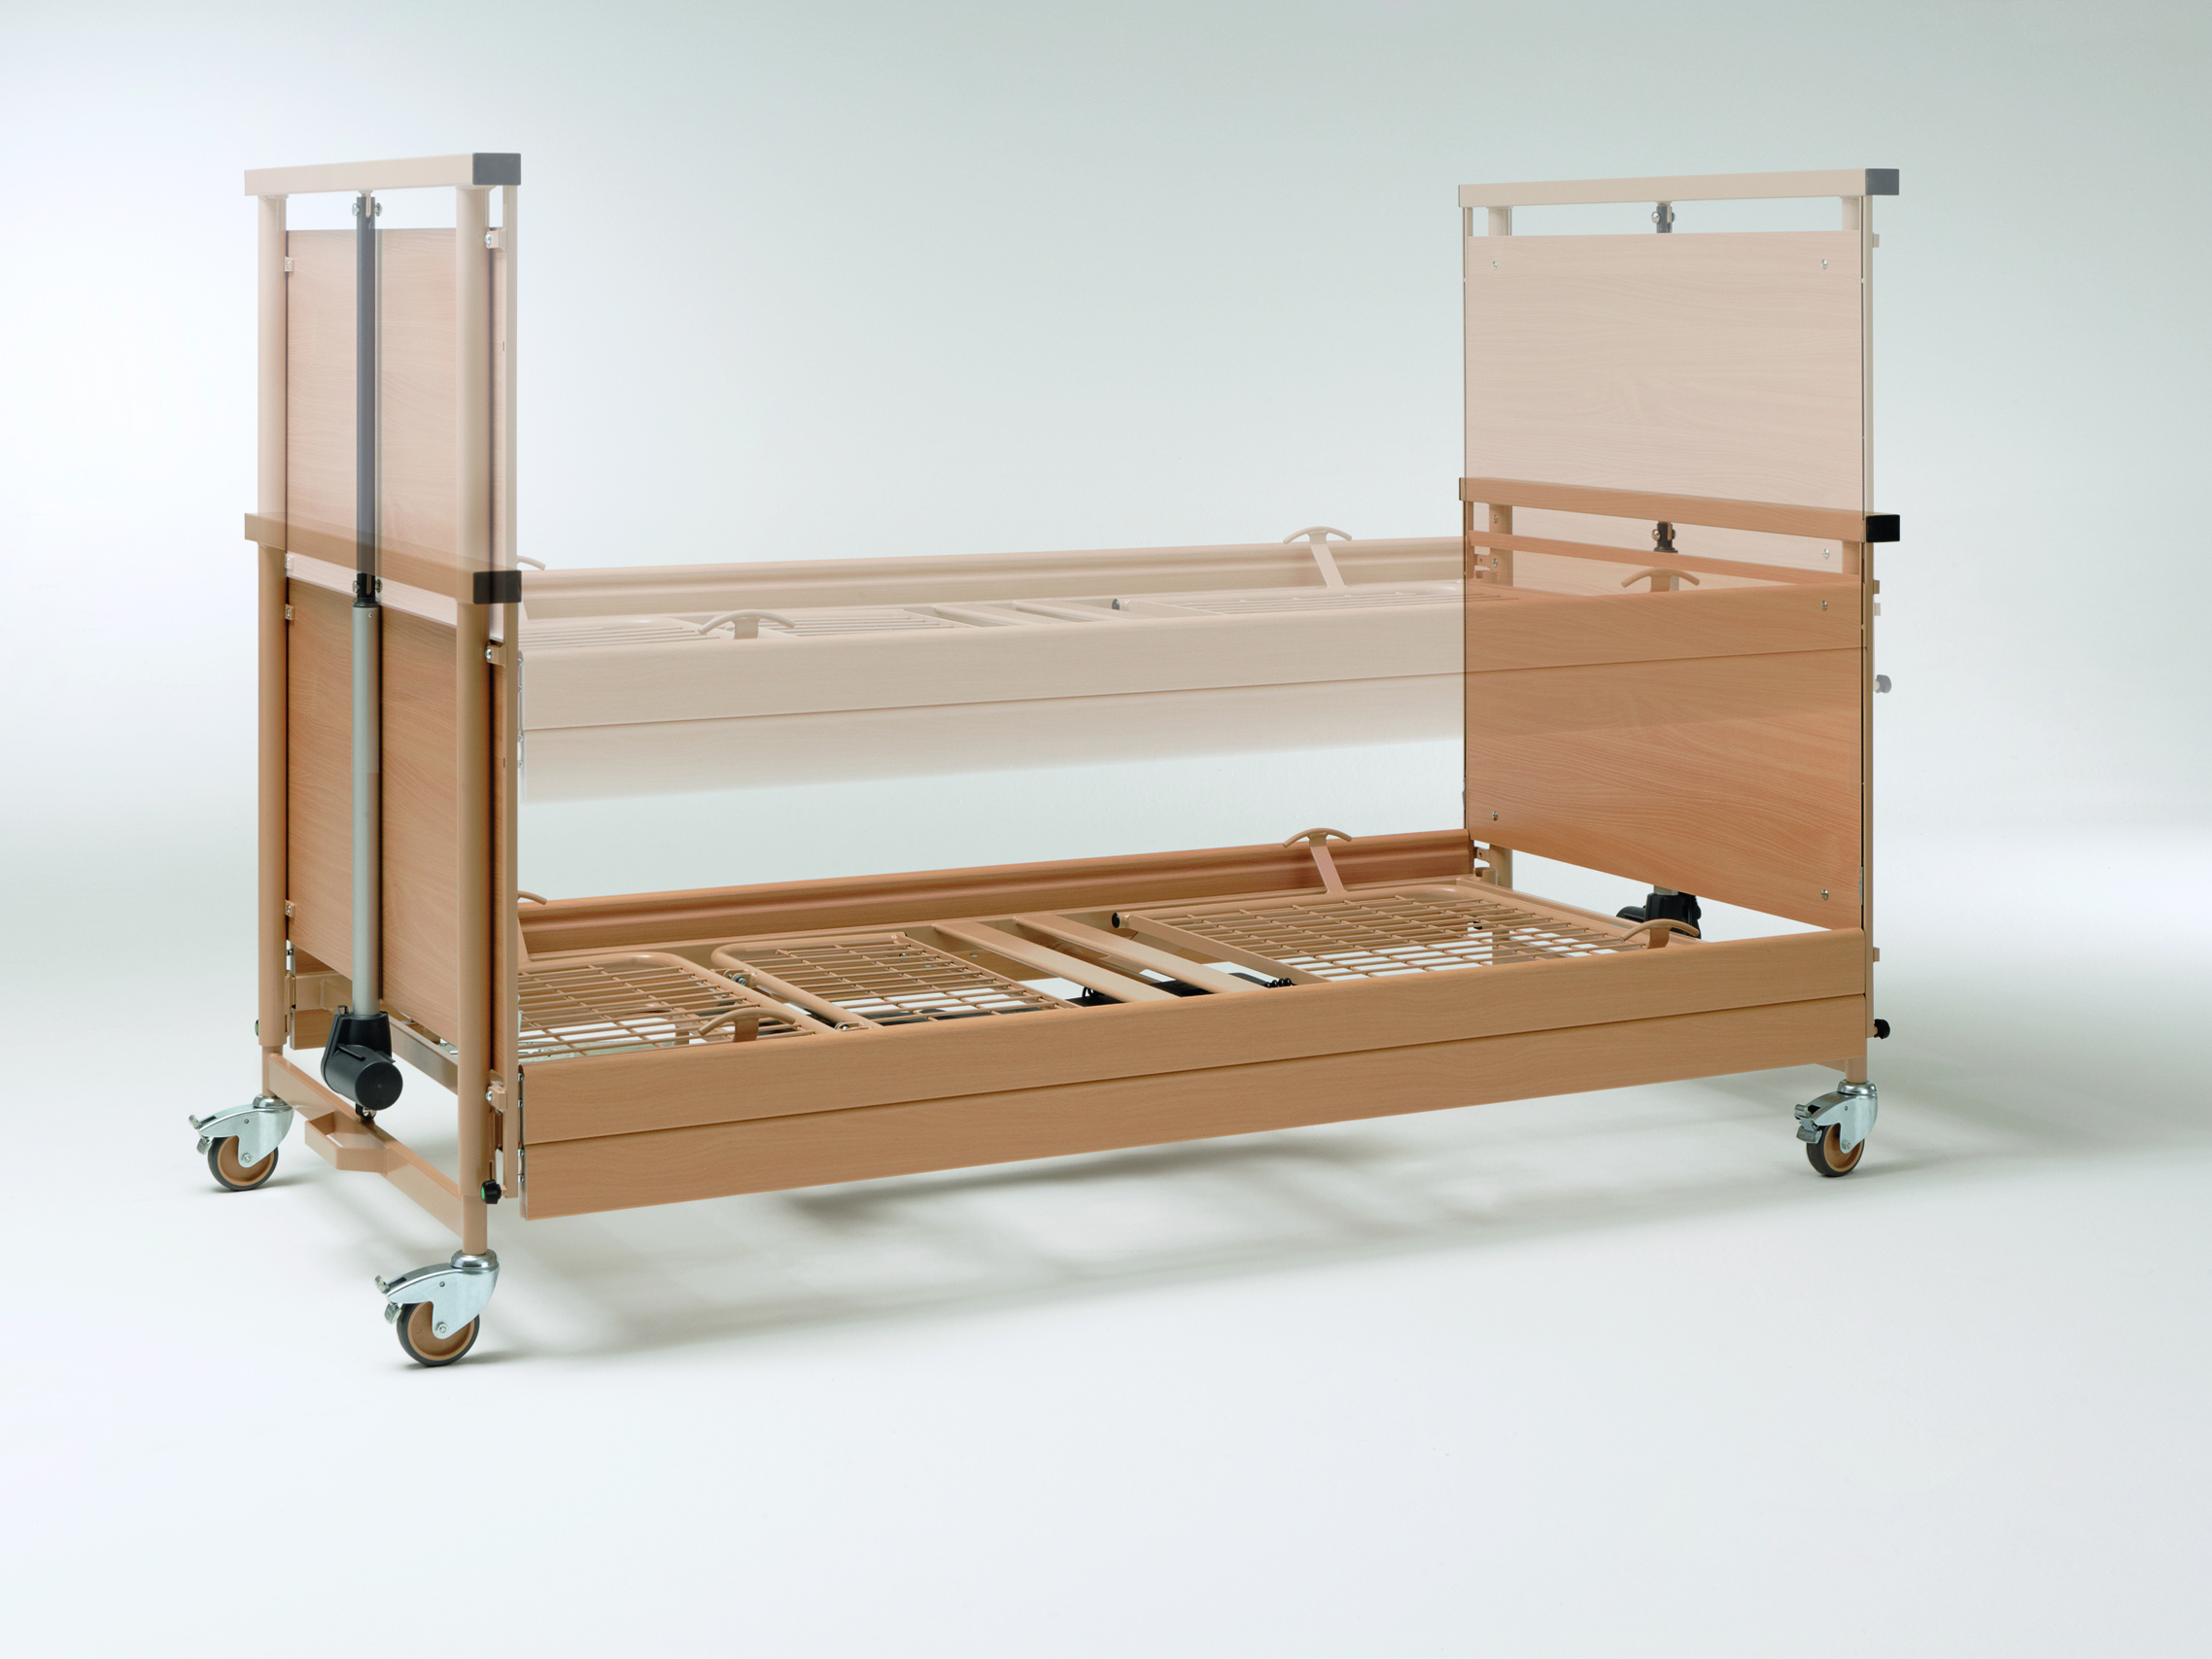 Large height adjustment range of the Allura II heavy-duty bed